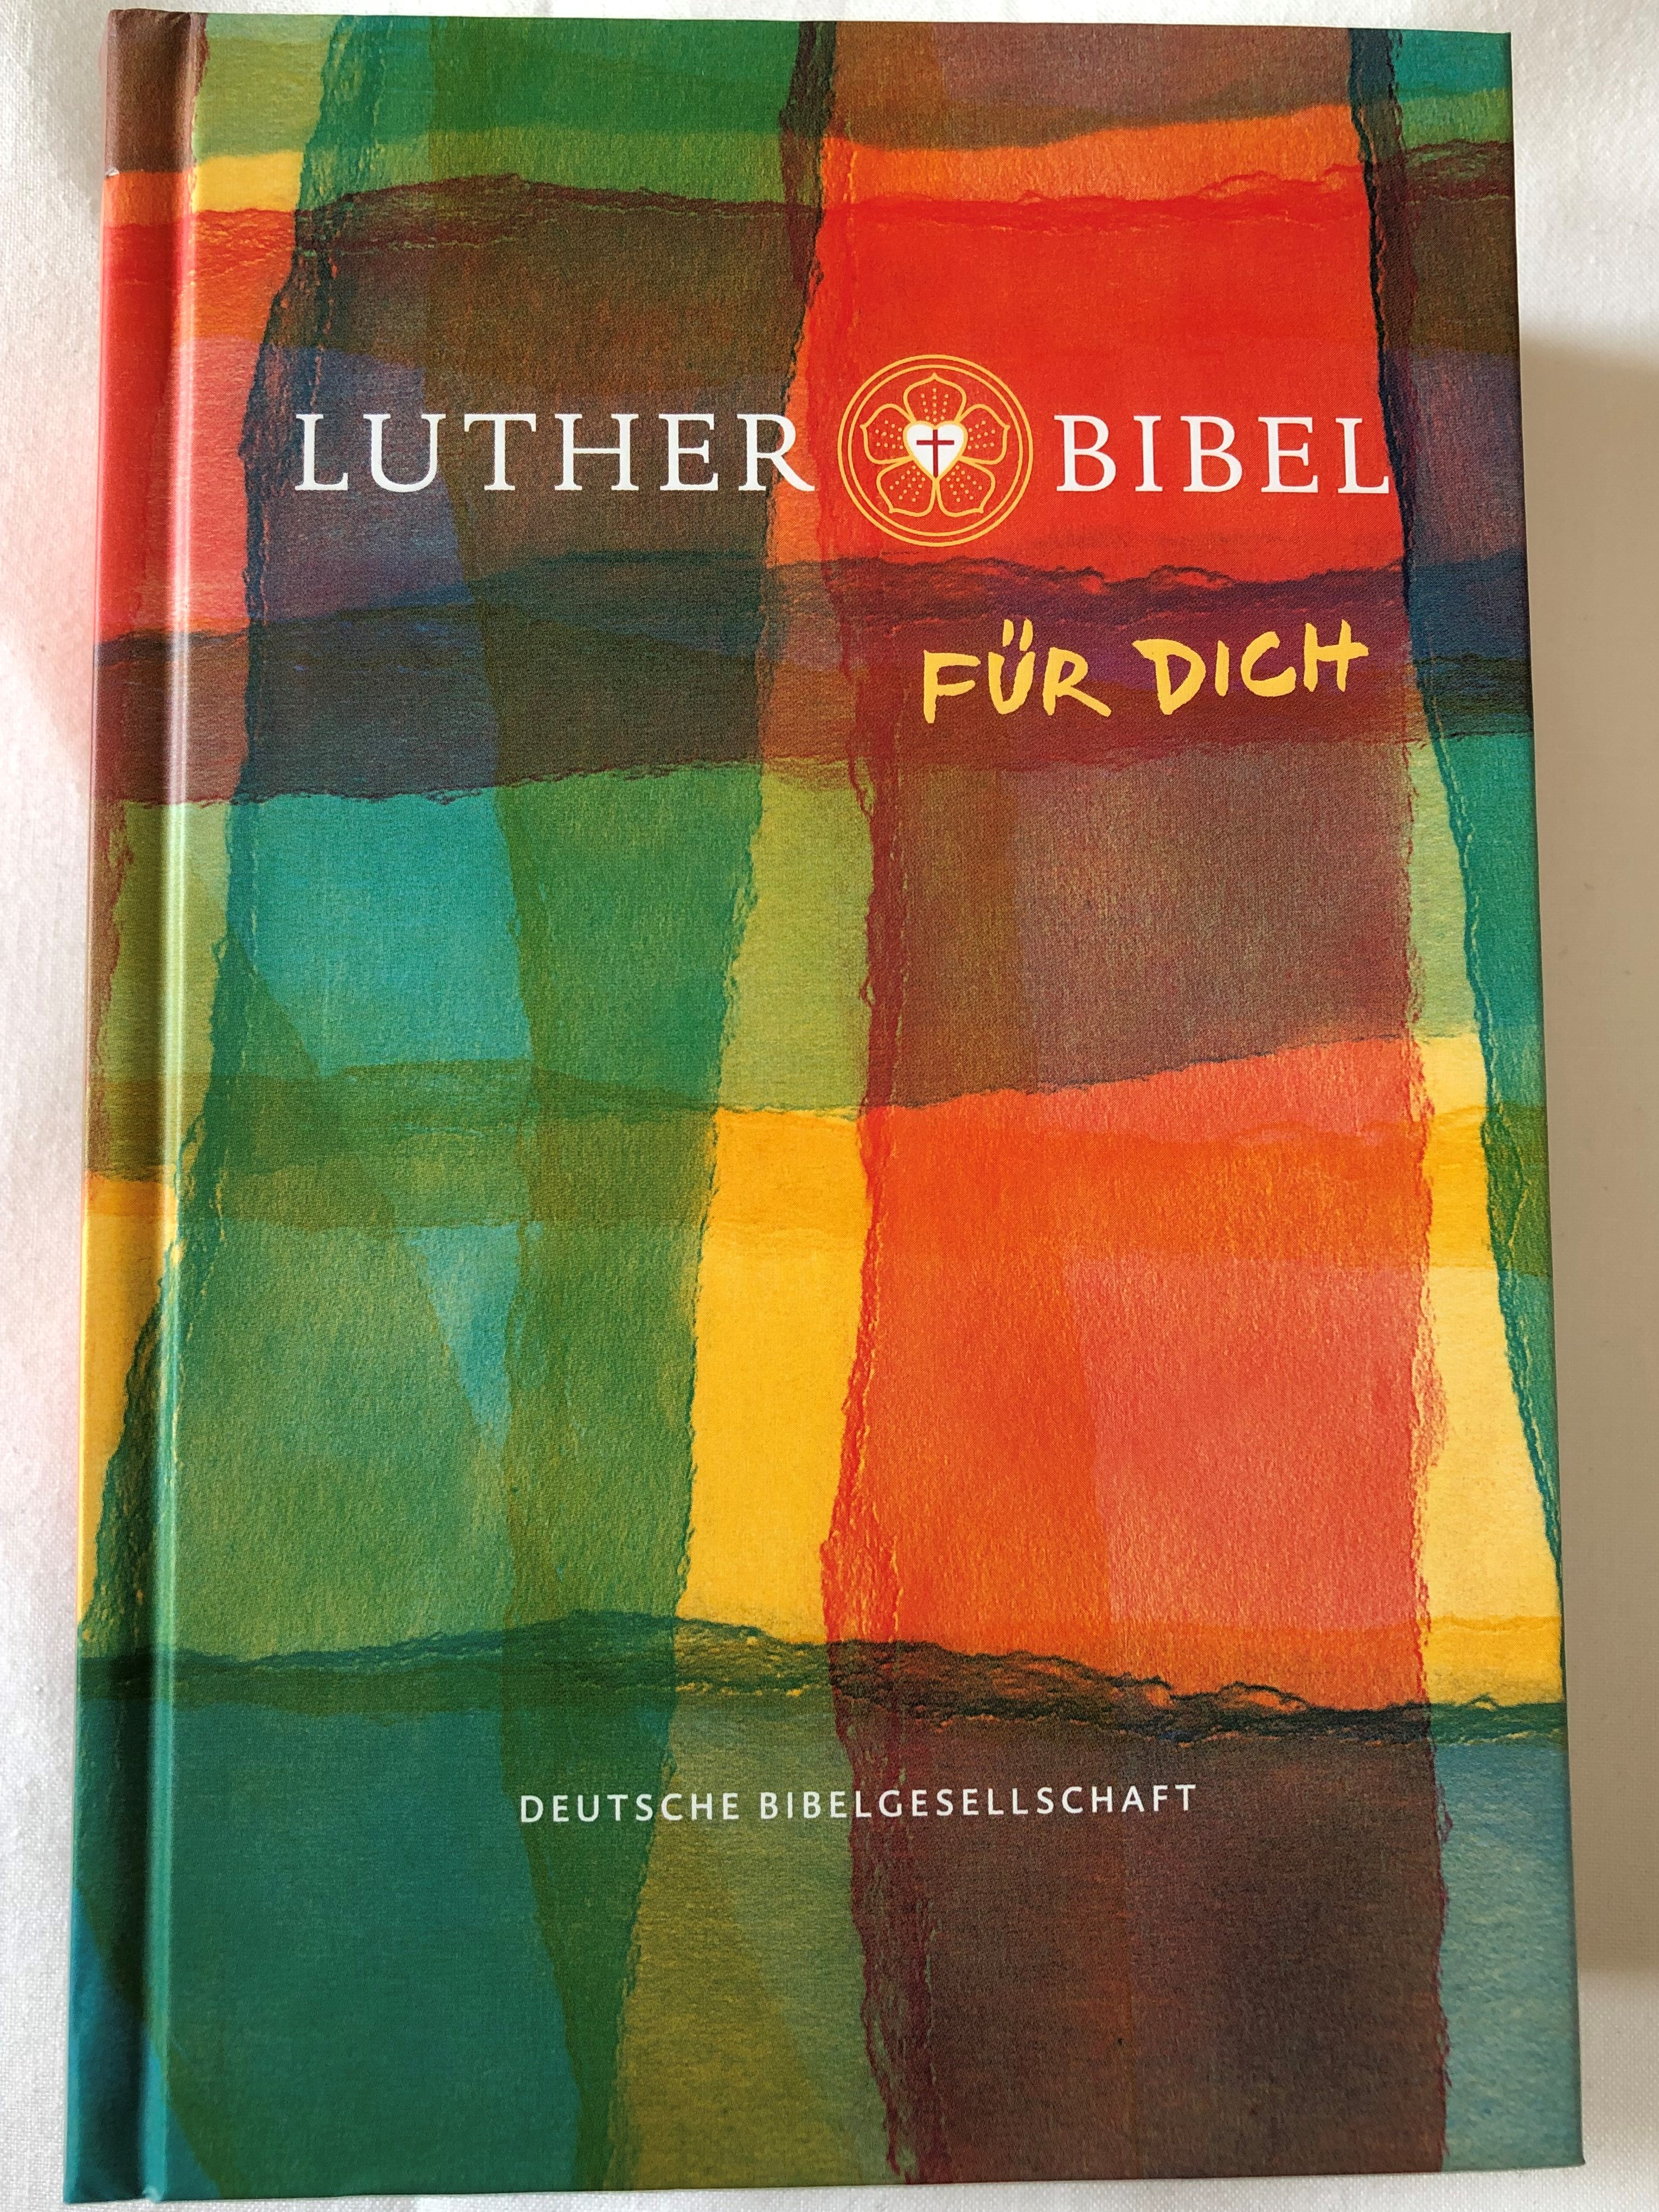 luther-bibel-f-r-dich-luther-bible-for-you-deutsche-bibelgesellschaft-german-language-bible-based-on-martin-luther-s-translation-2017-revision-bible-study-helps-page-index-hardcover-1-.jpg